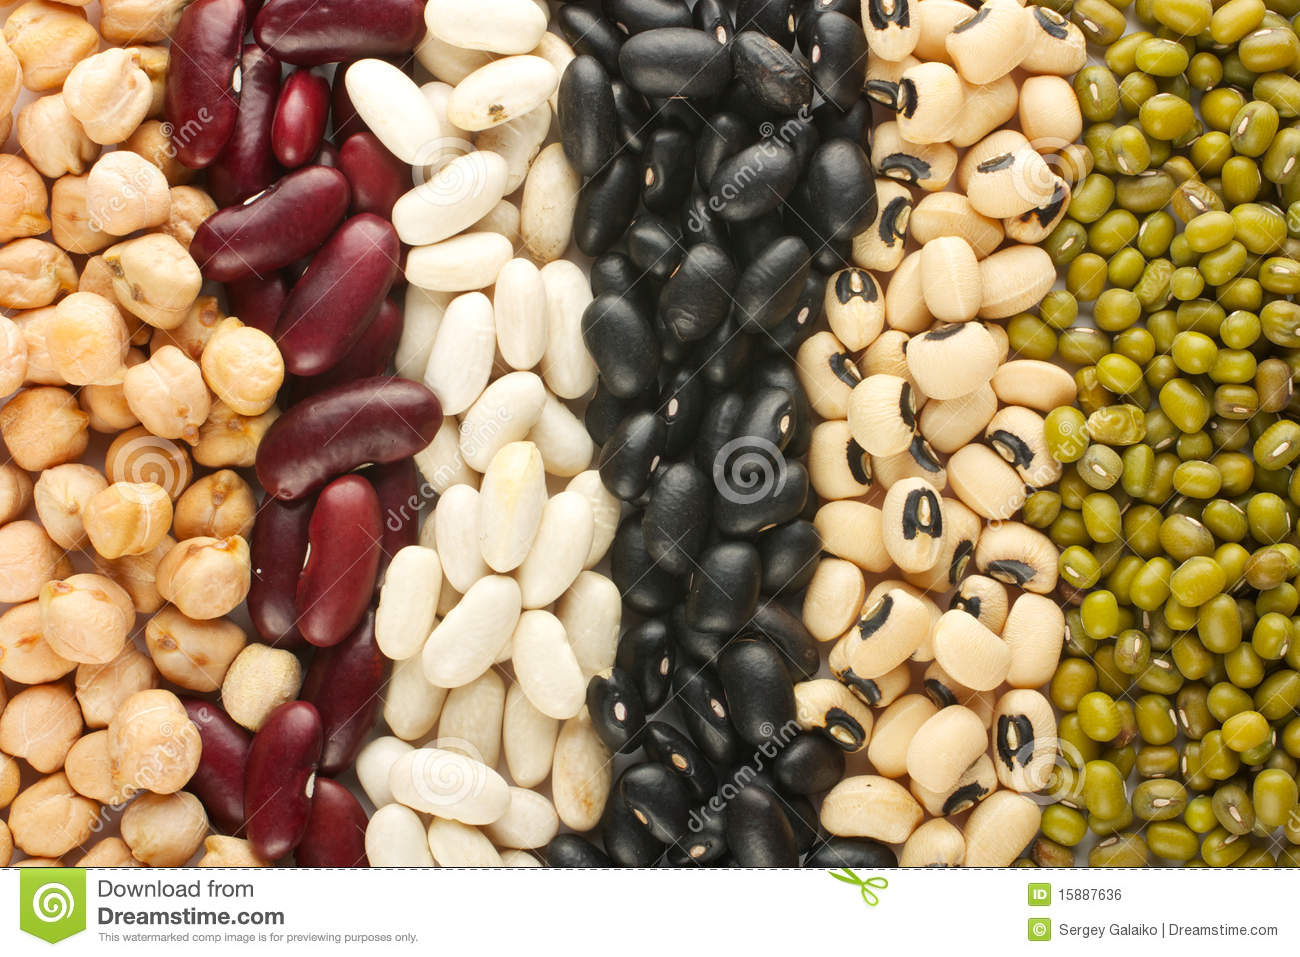 How To Eat Beans In A Raw Food Diet